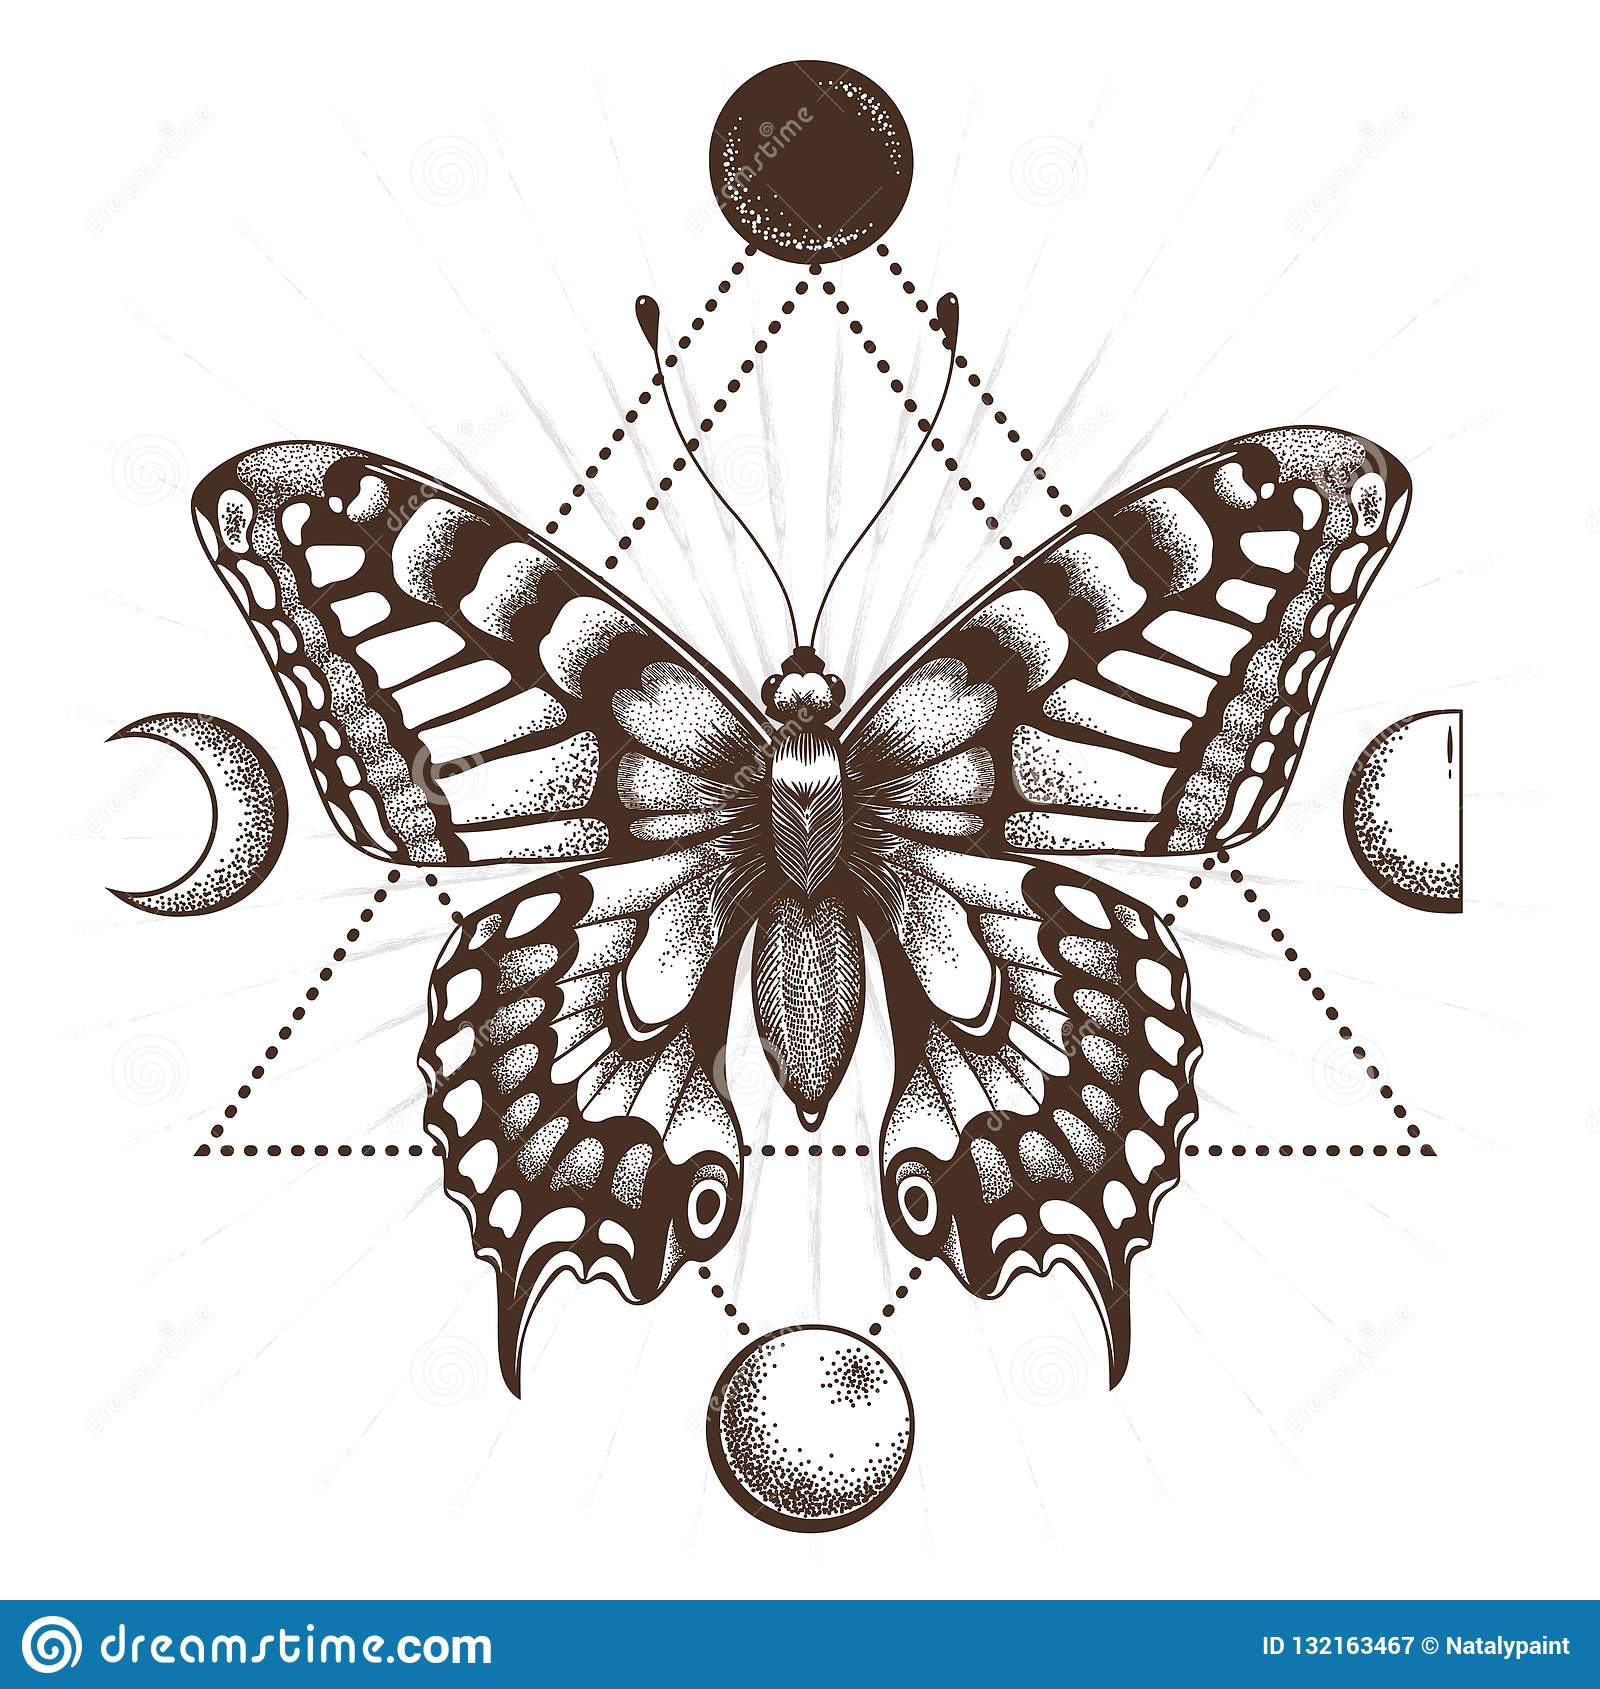 1659426fe37dc Butterfly in triangle. Moon phases. Sepia color.Tattoo Design. T-shirt  design. Mystical symbol of soul, immortality, rebirth and resurrection.